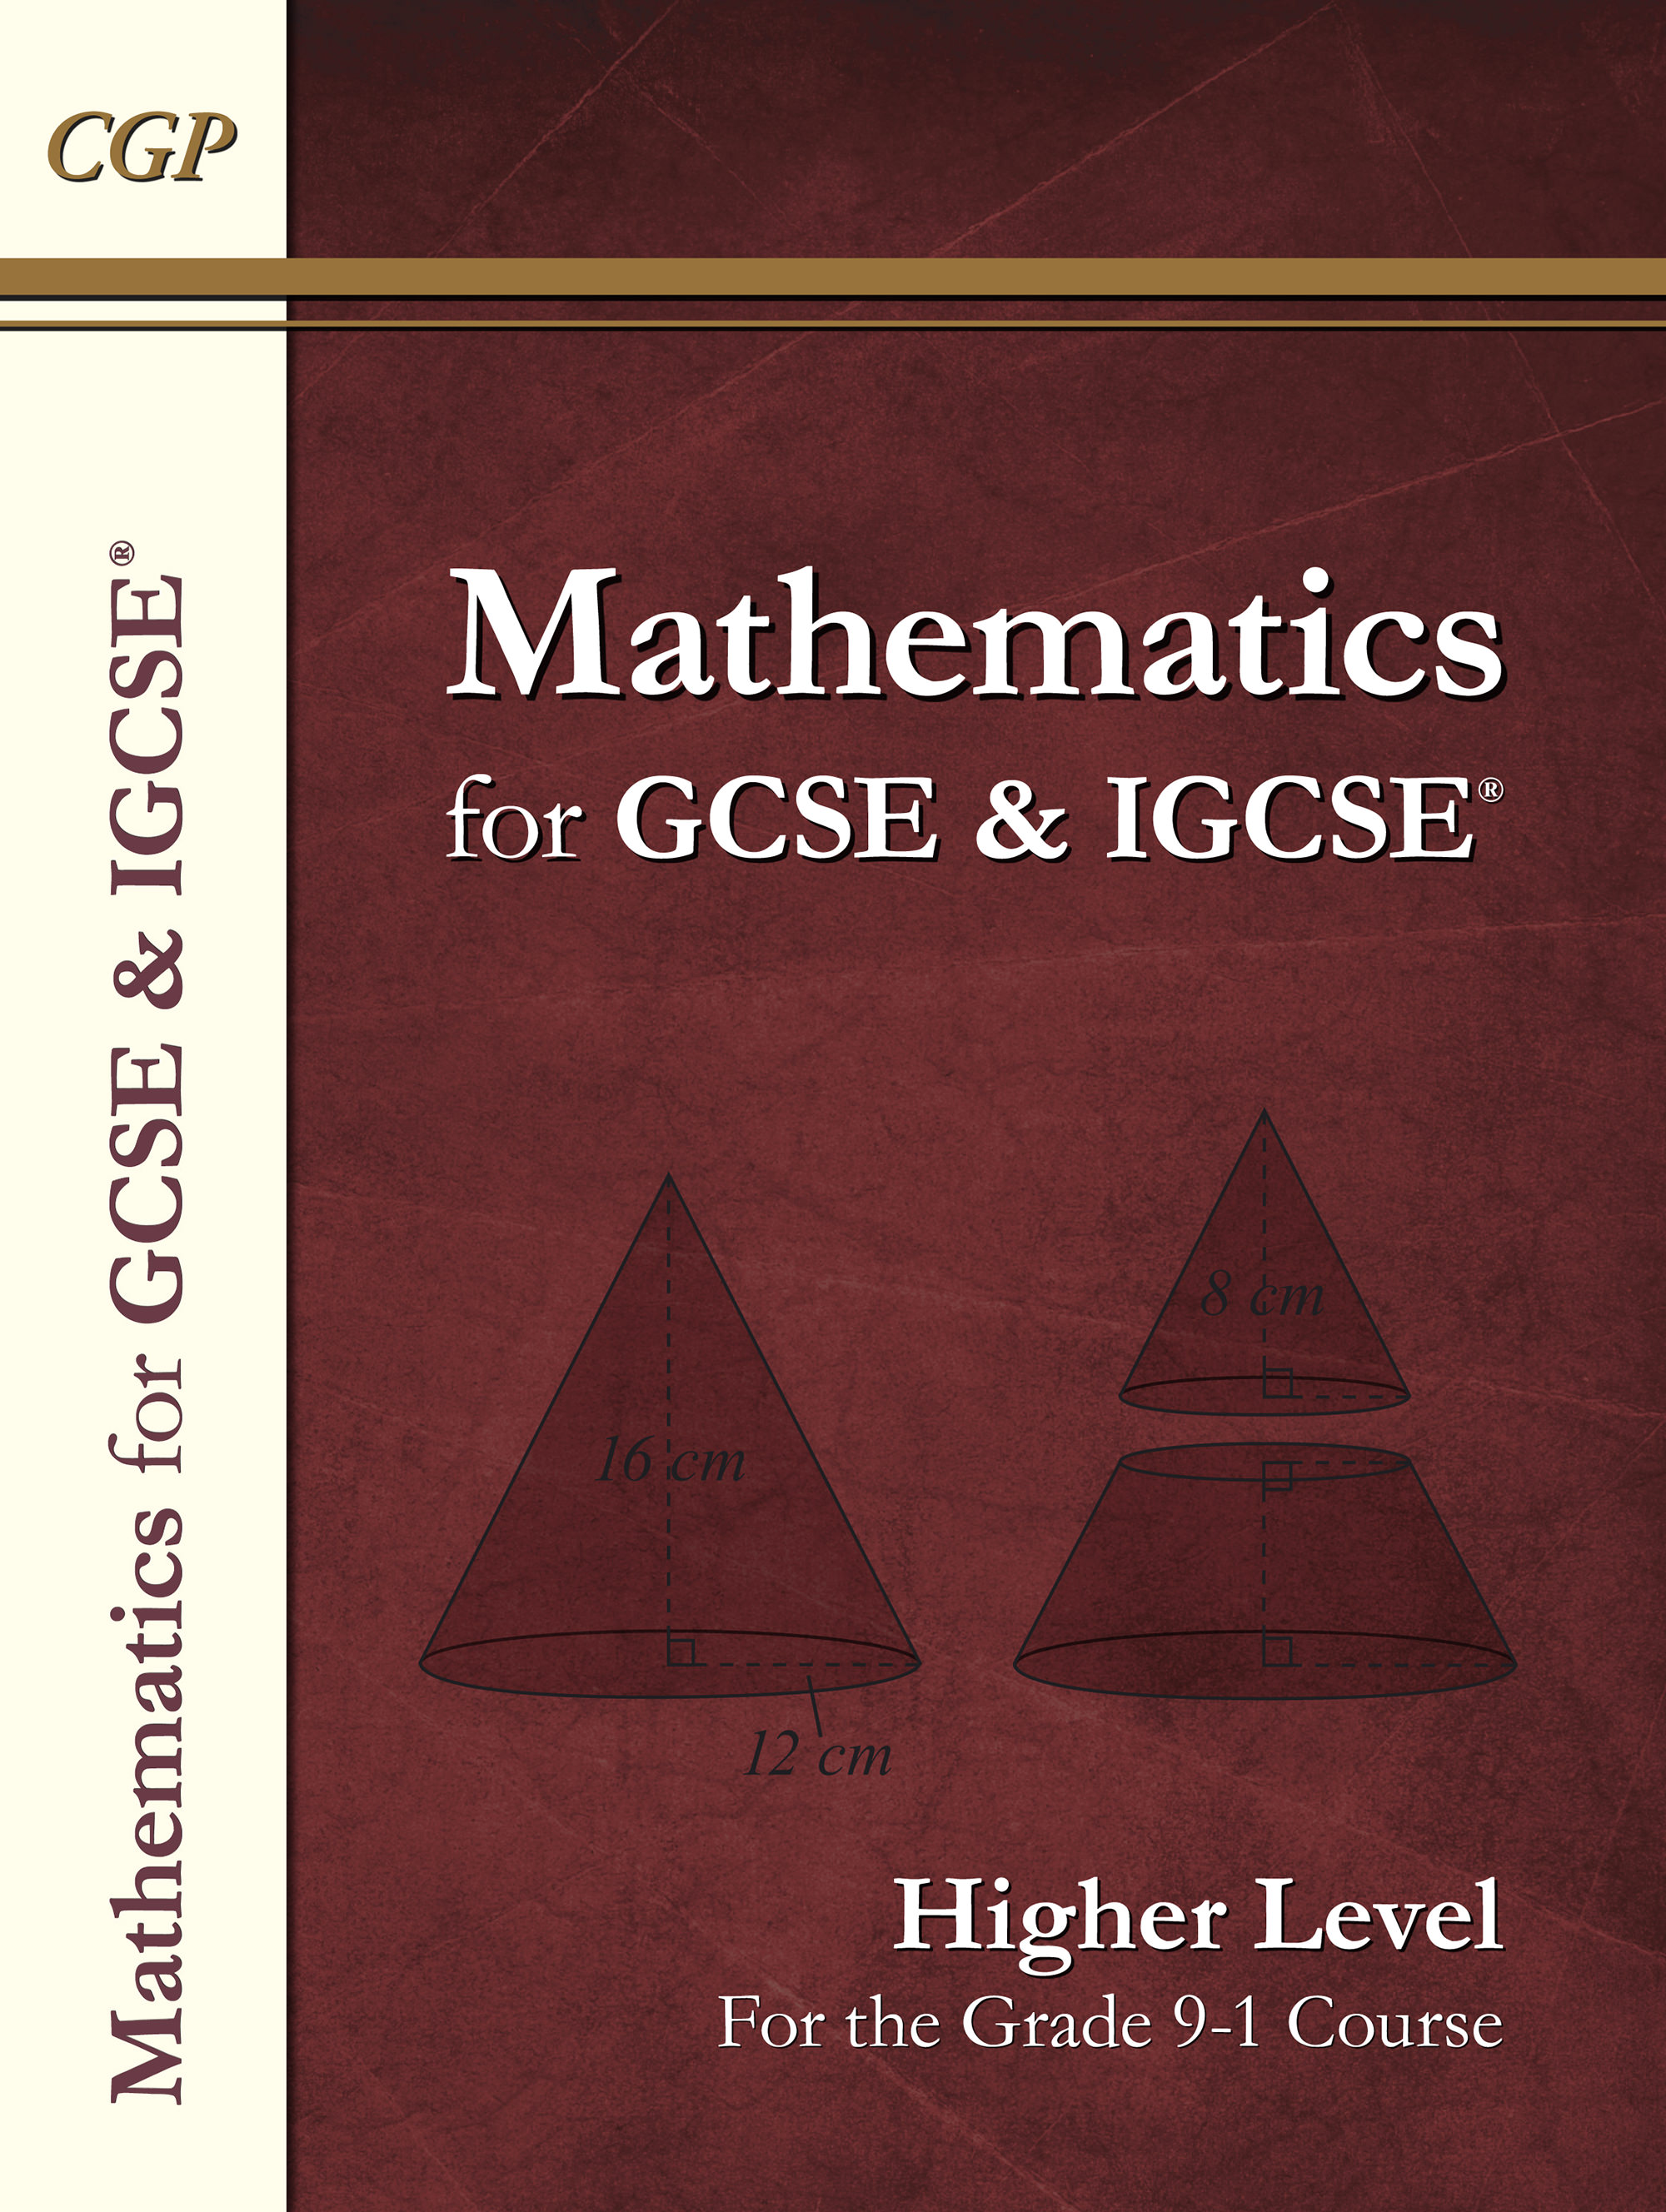 MHN43 - New Maths for GCSE and IGCSE® Textbook, Higher (for the Grade 9-1 Course)